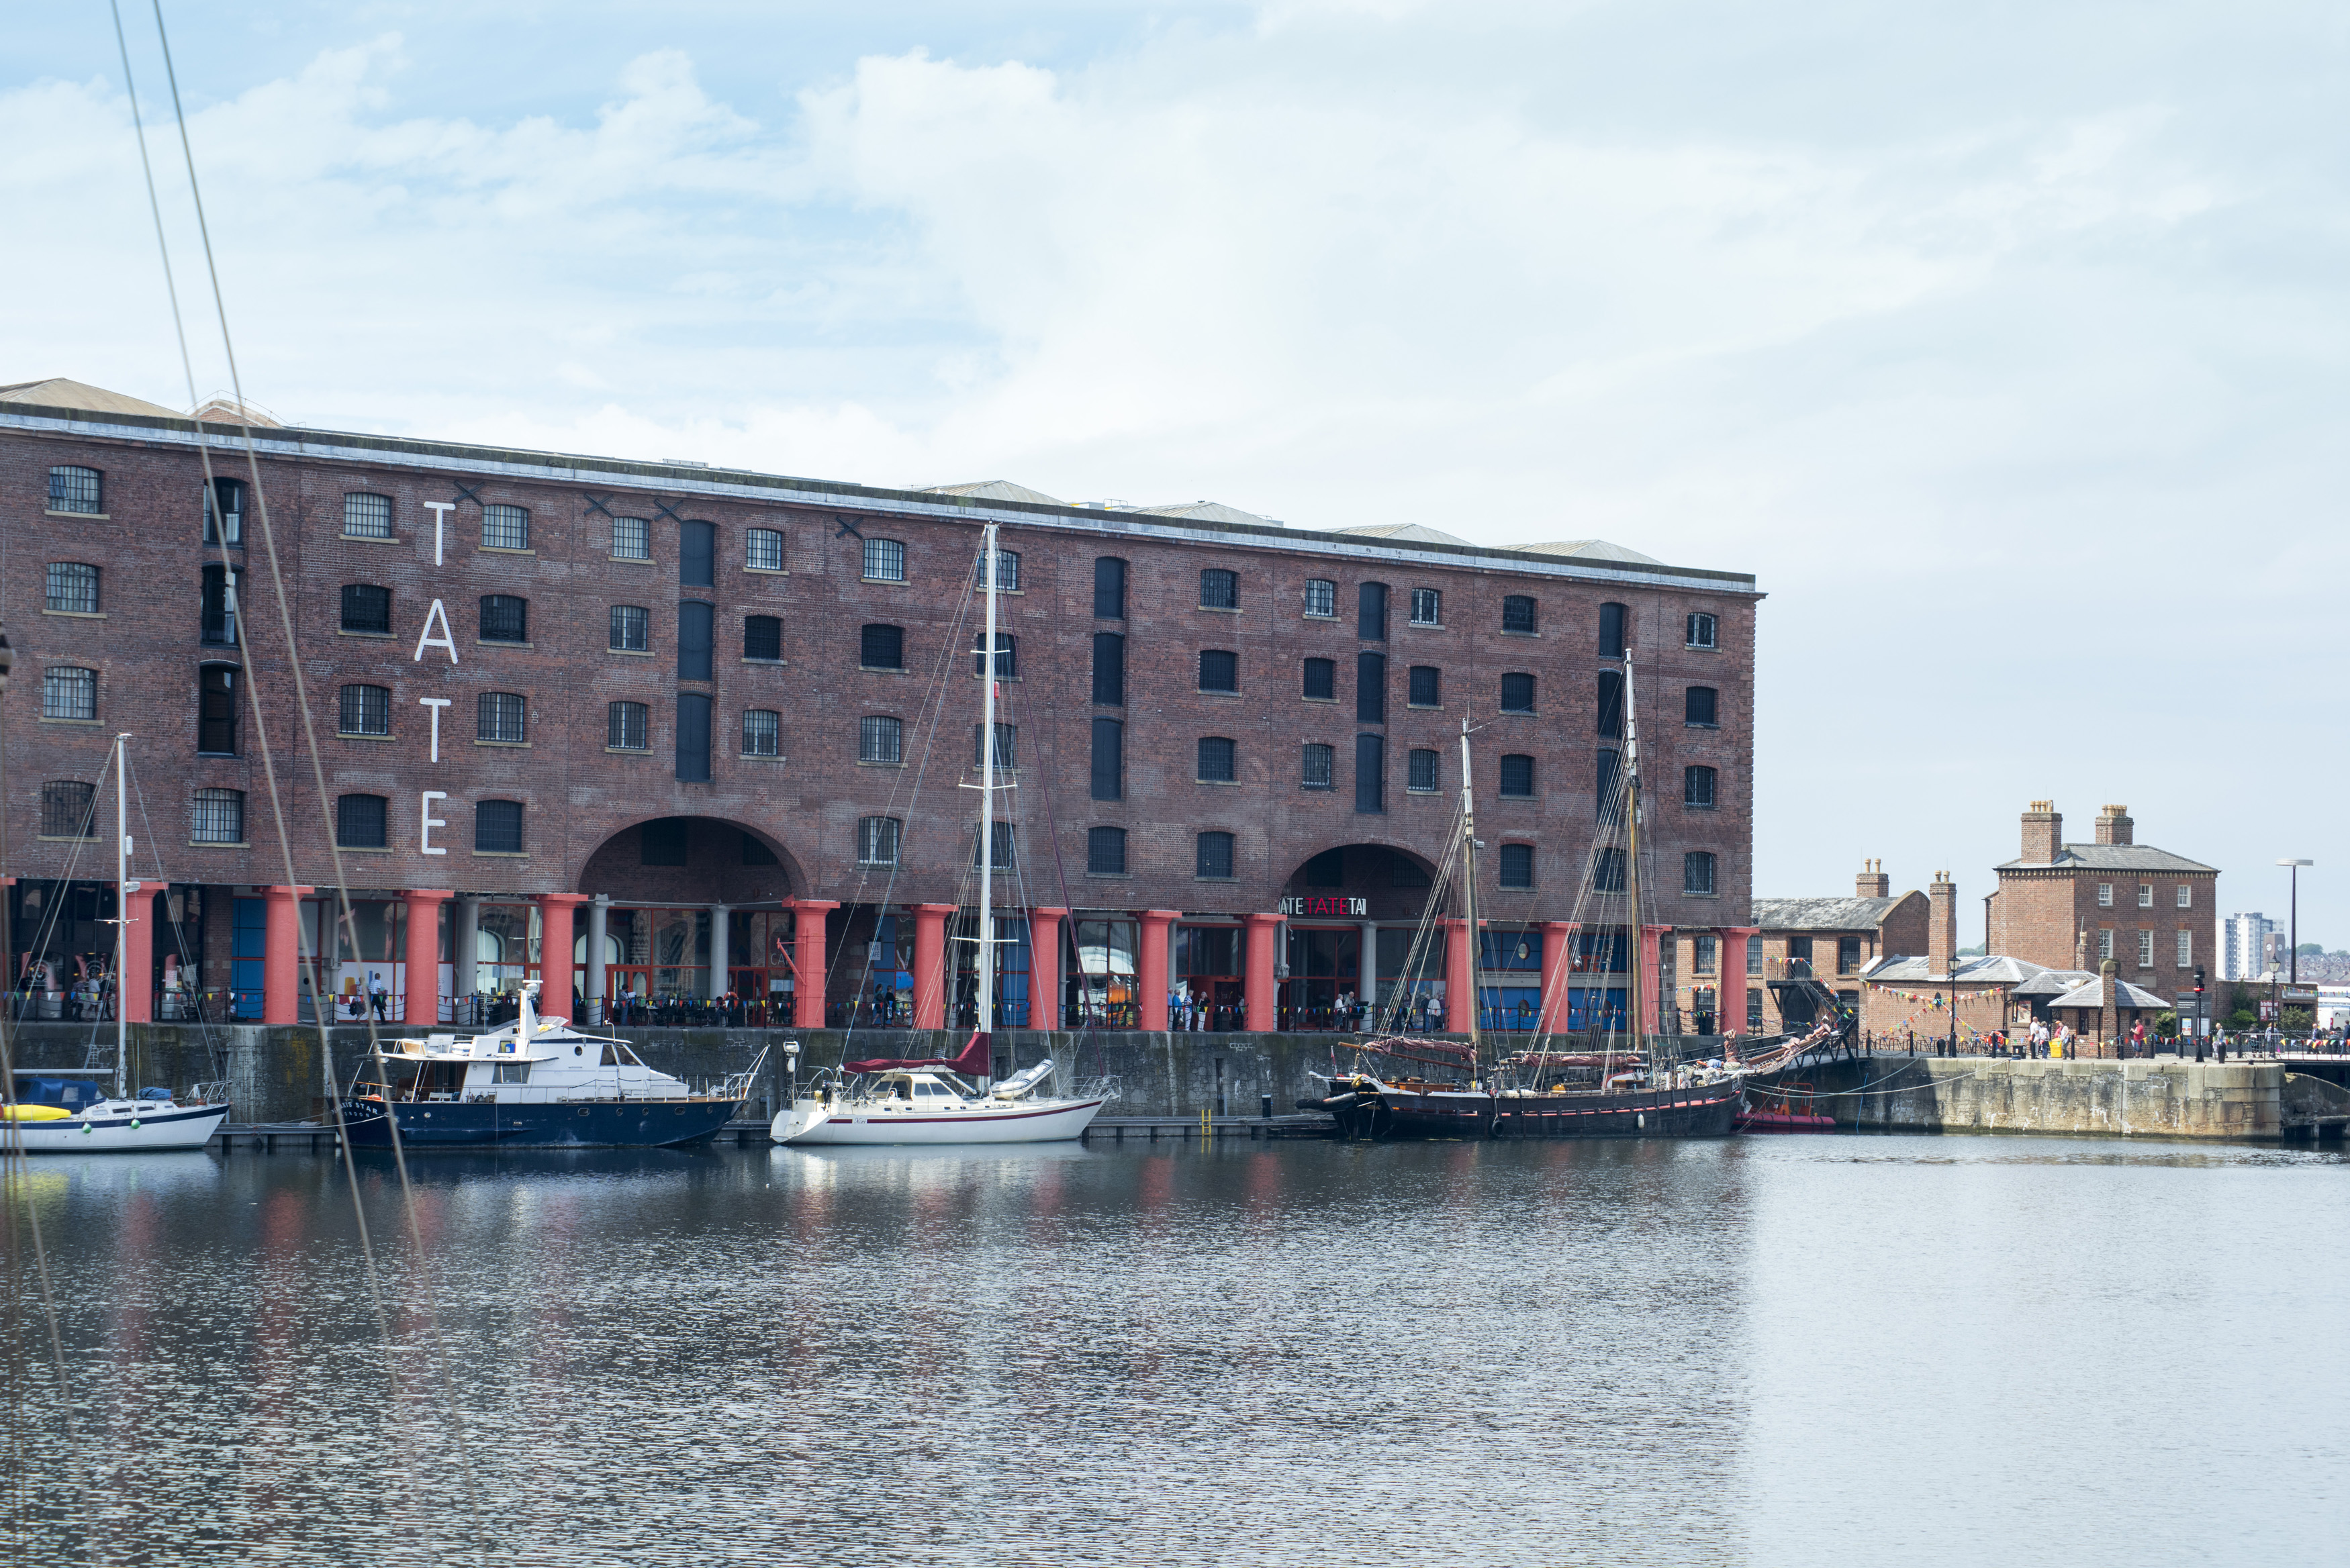 Boats parked near famous landmark tourist destination known as Liverpool Albert Dock in the United Kingdom